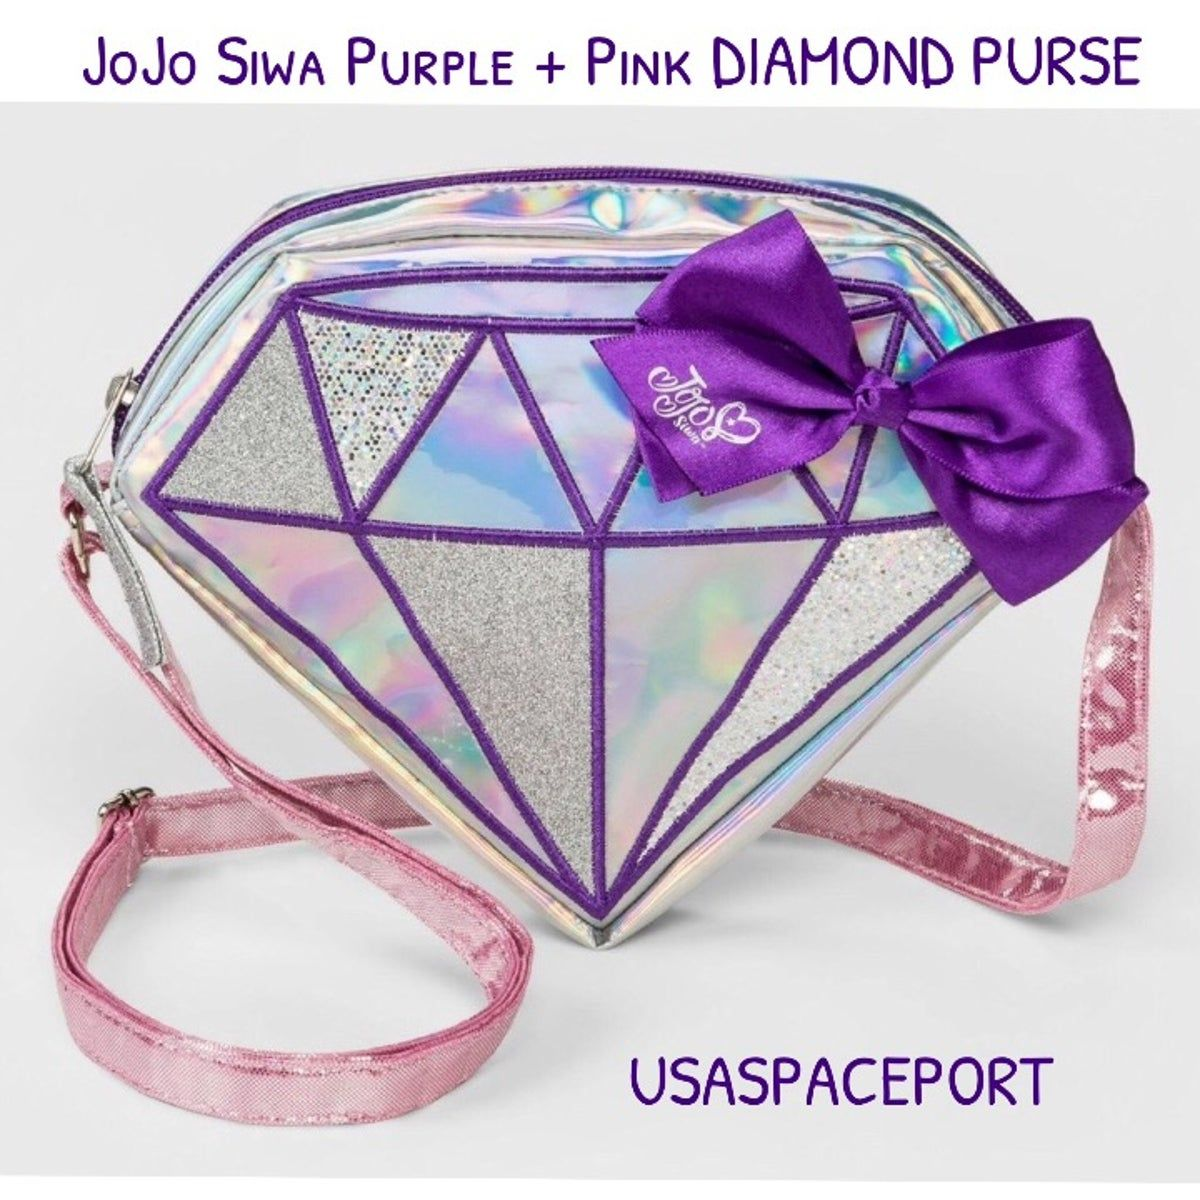 Jojo Siwa Purple Diamond Purse Hand Bag Purple Diamond Jojo Siwa Purses